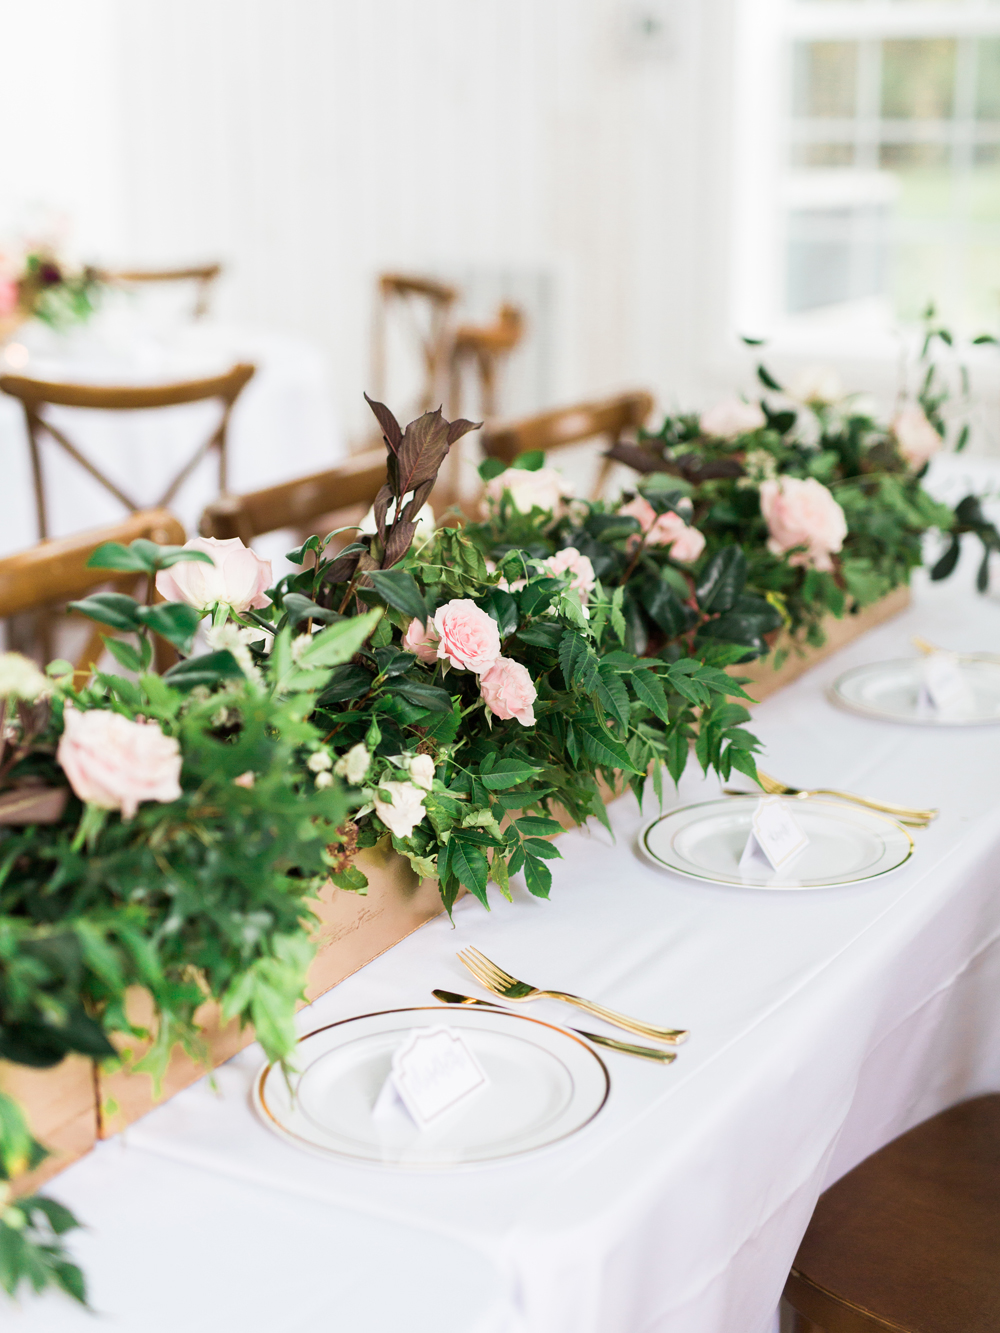 wedding tablescapes - photo by Elisabeth Carol Photography http://ruffledblog.com/picturesque-garden-wedding-at-white-sparrow-barn